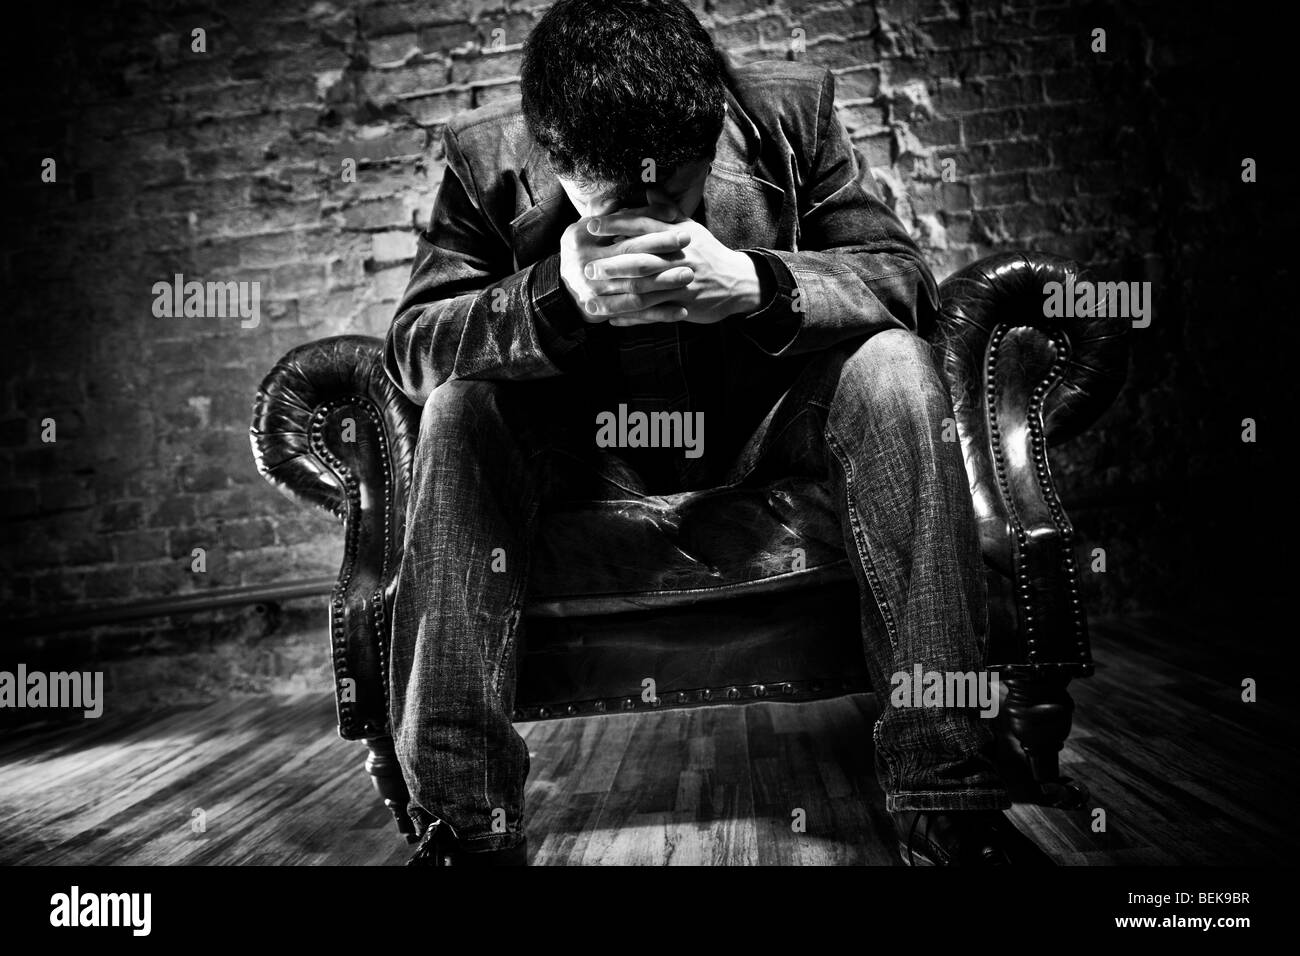 Pensive man. Dark dramatic colors. - Stock Image